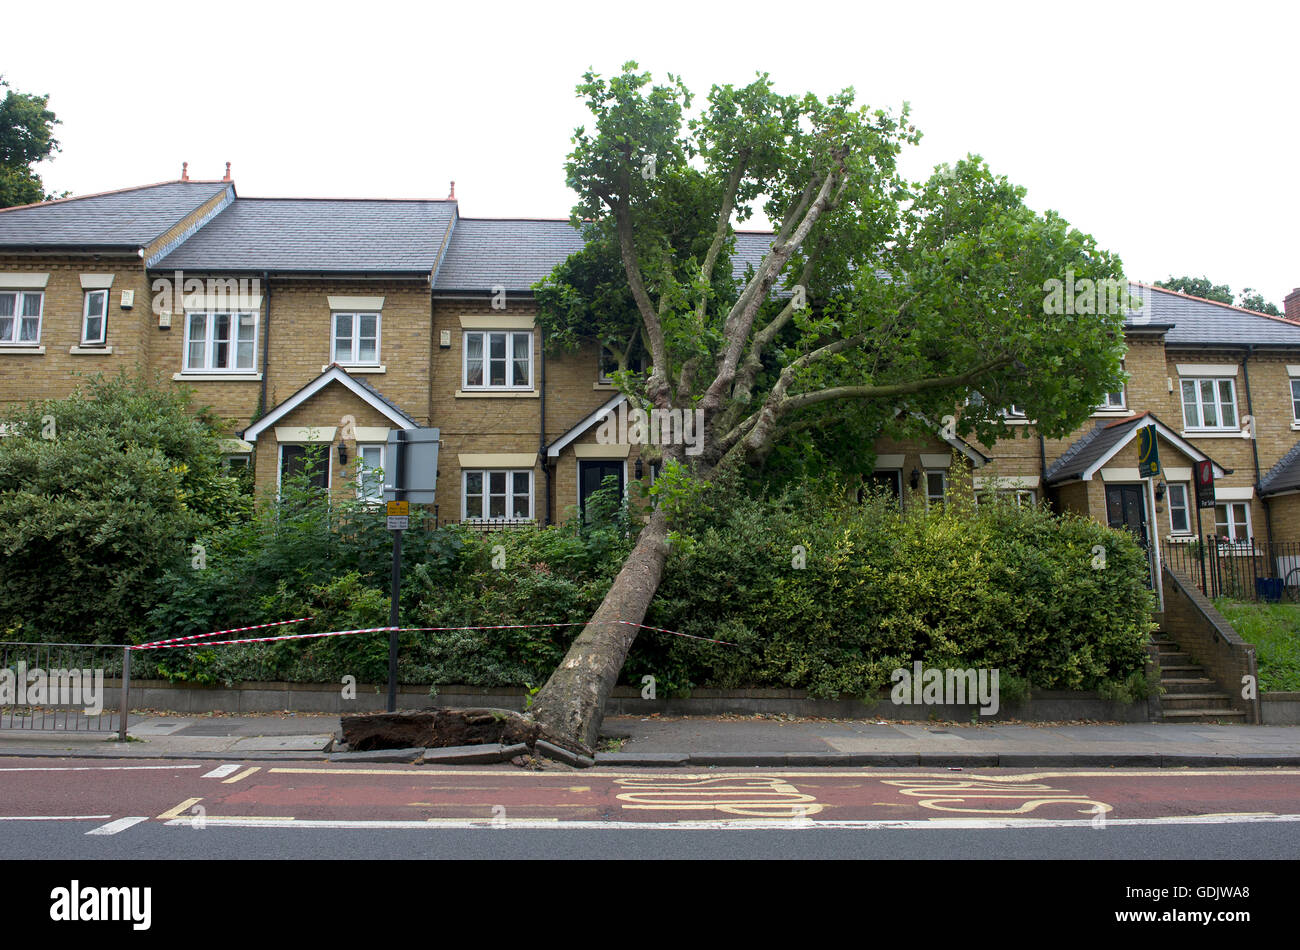 An uprooted tree leans against a house in East Dulwich London - Stock Image